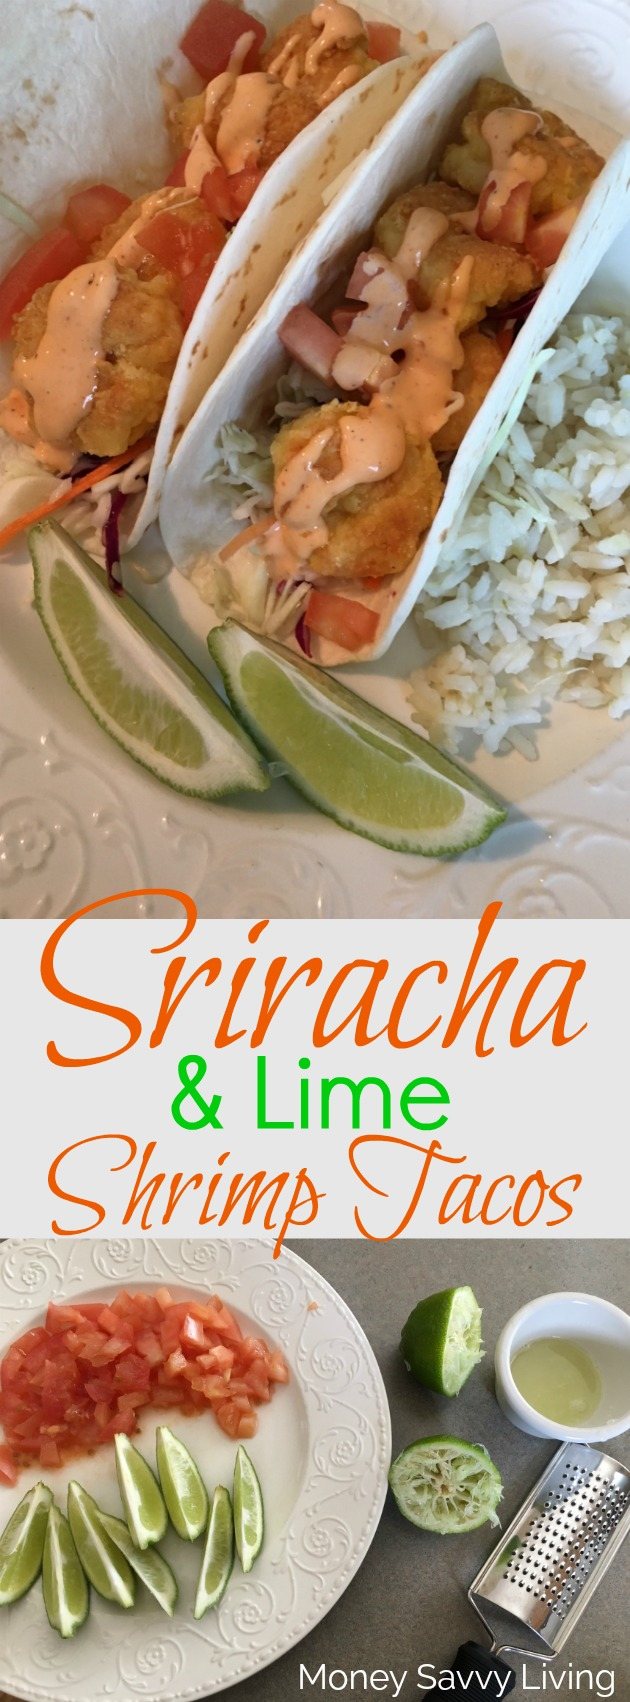 Sriracha Shrimp Tacos // Money Savvy Living